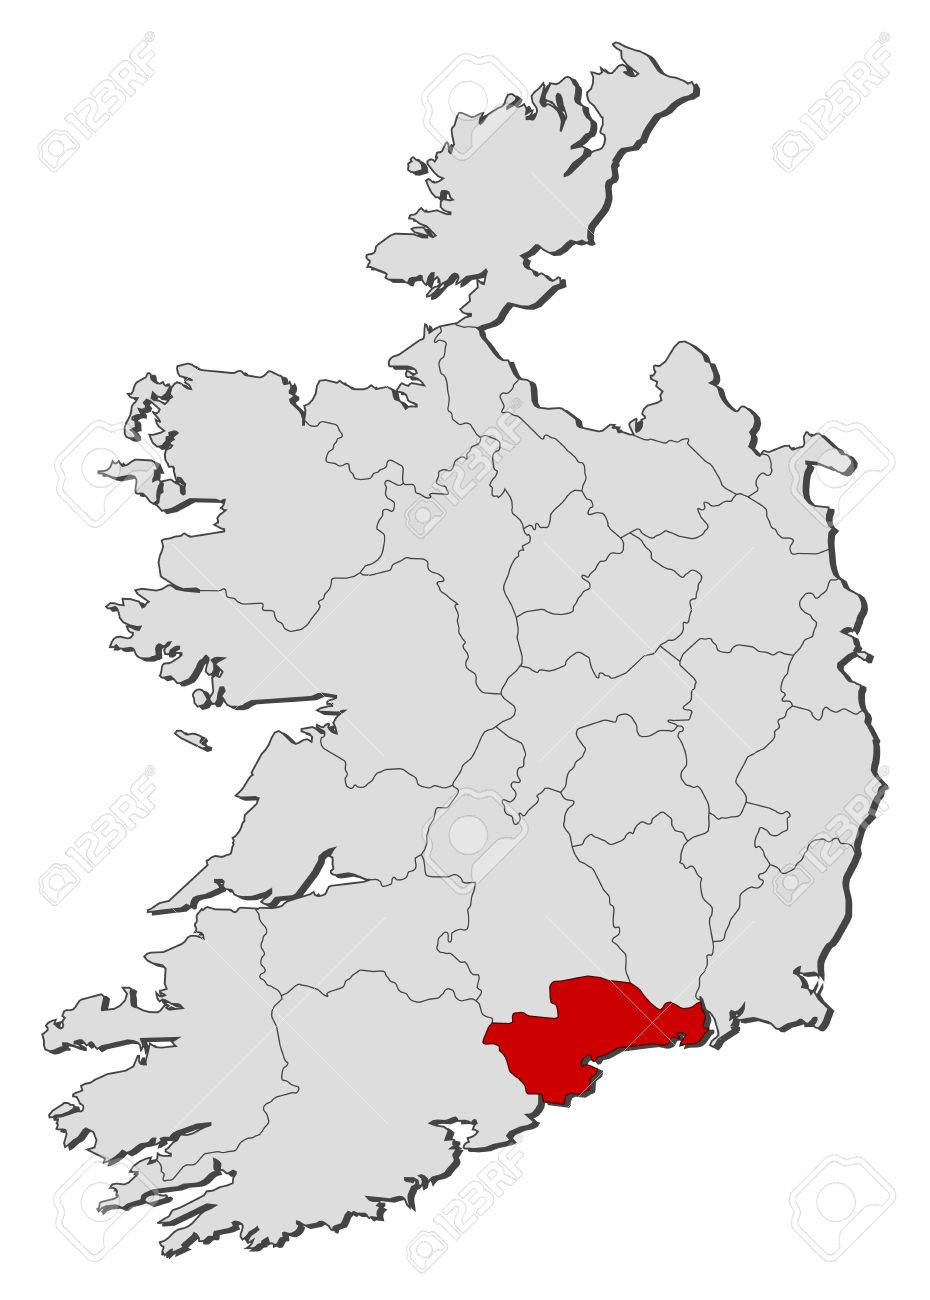 Map Of Ireland With The Provinces Waterford Is Highlighted Royalty